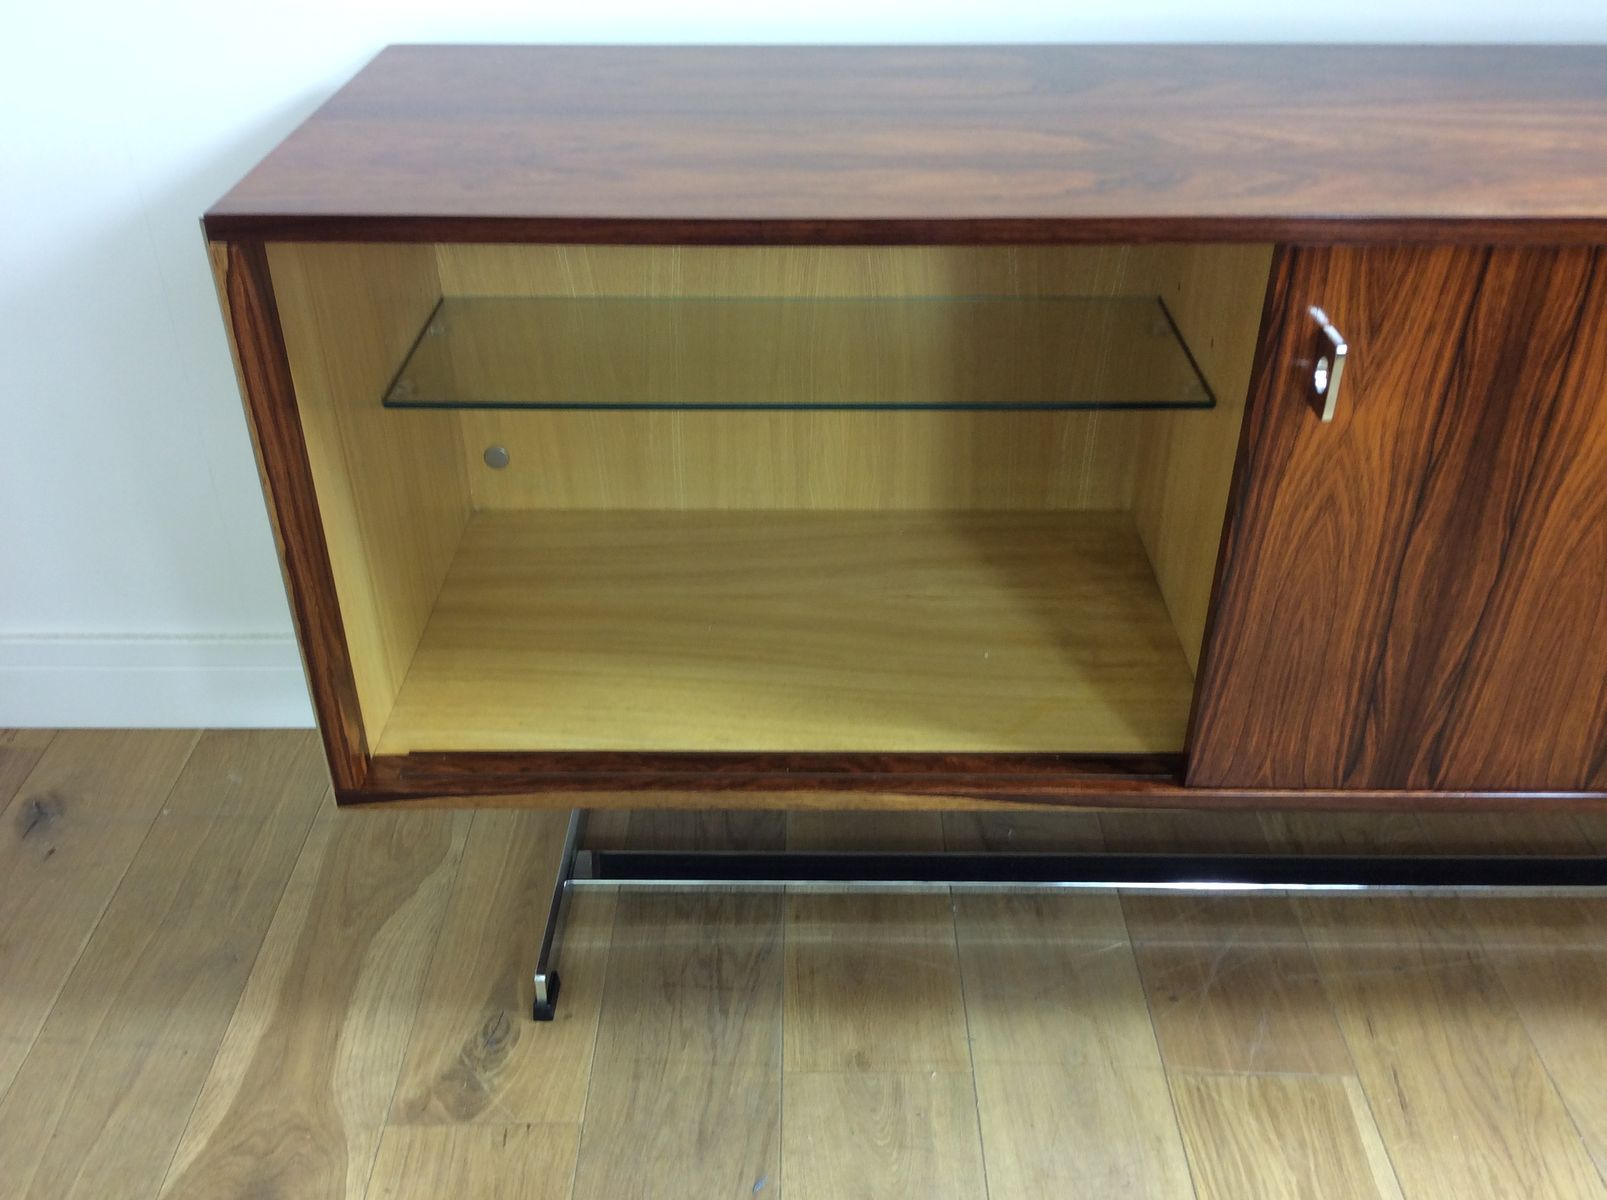 Rosewood& Chrome Sideboard by Richard Young for Merrow Associates, 1970s for sale at Pamono